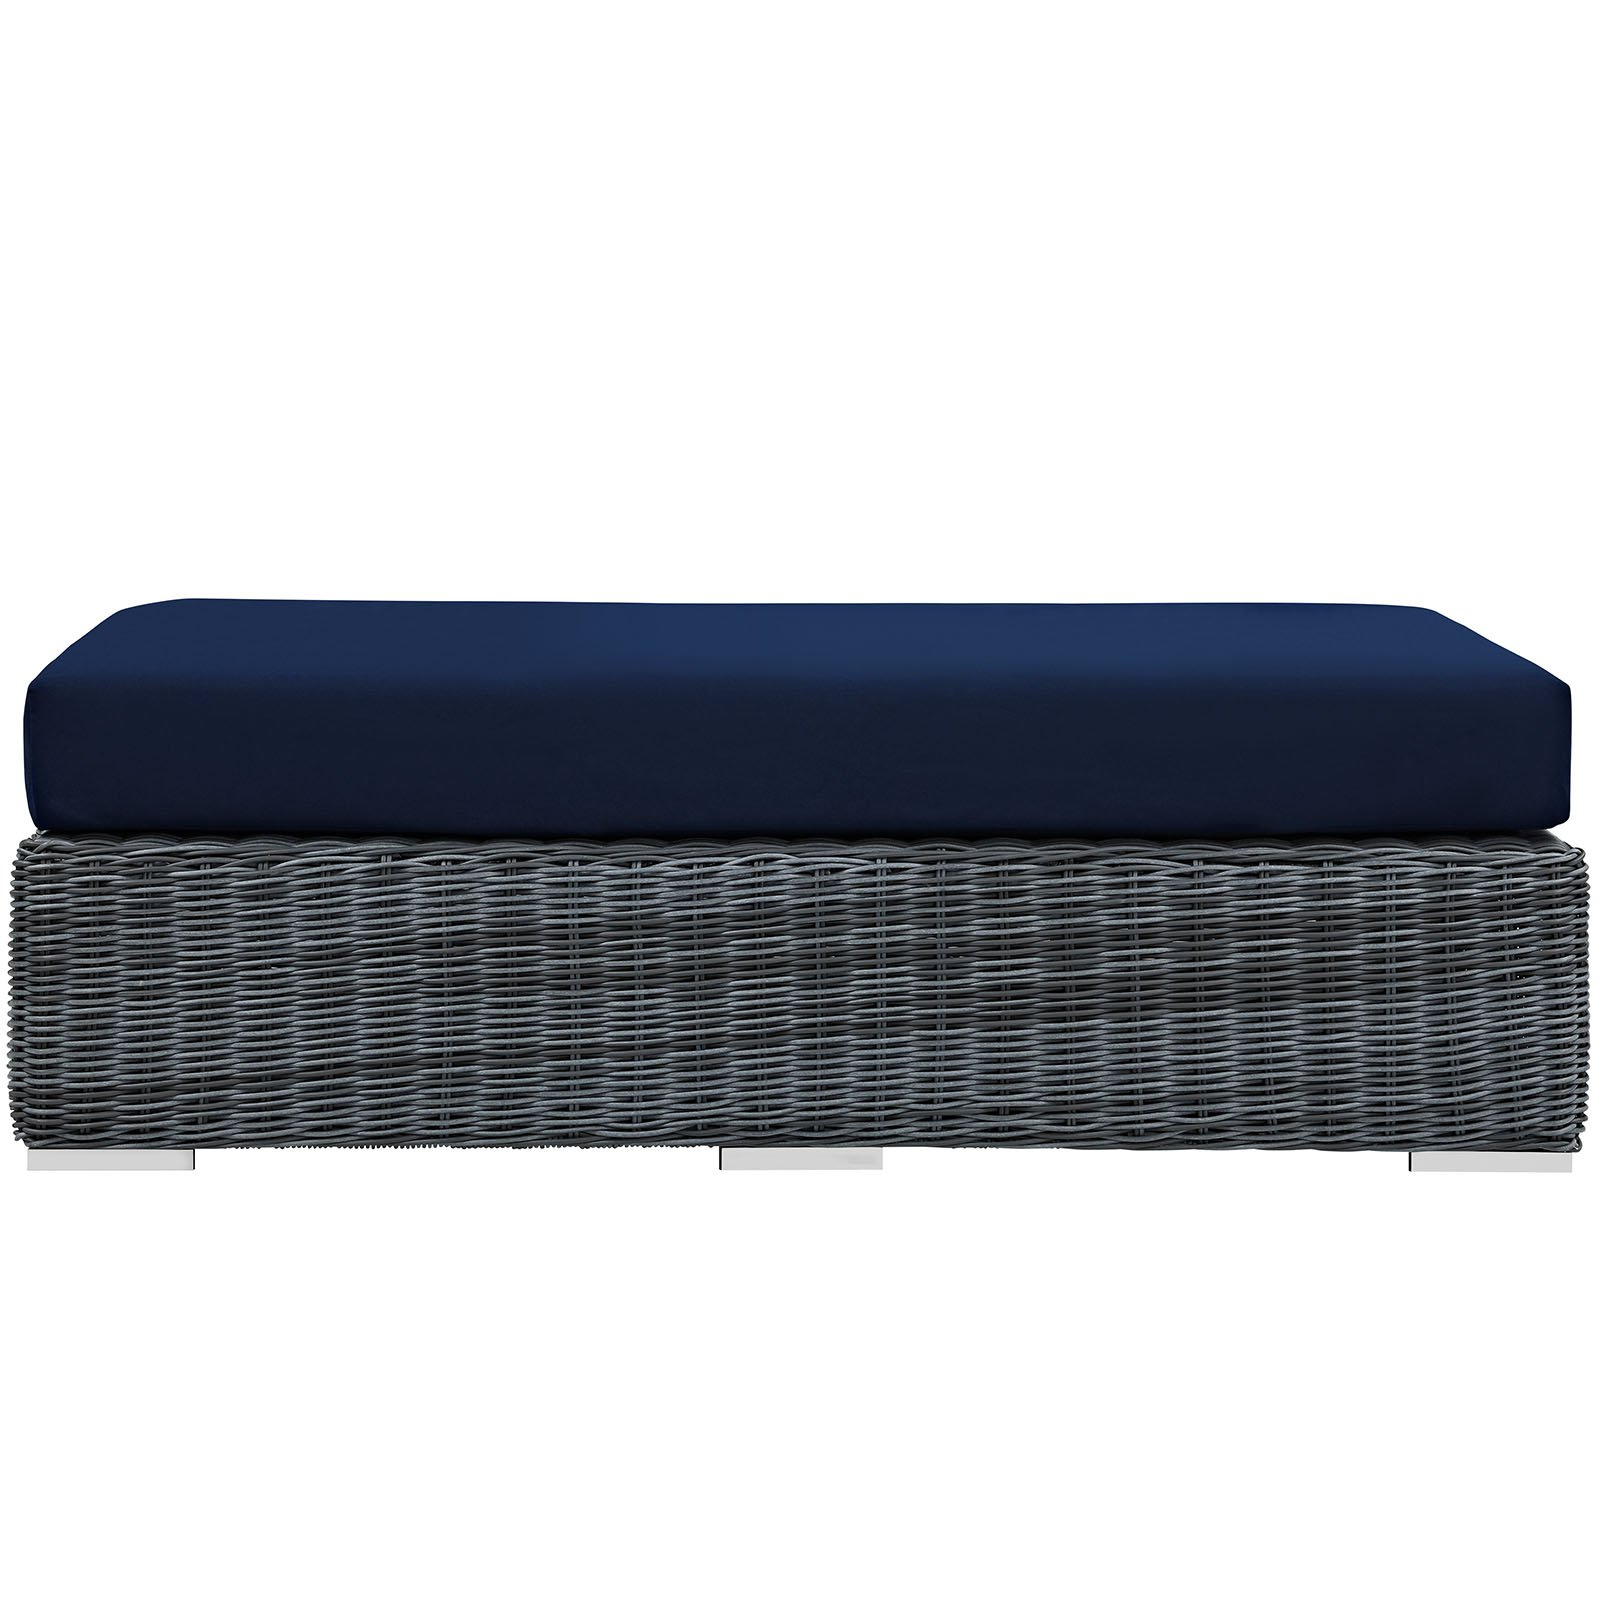 Modway Summon Outdoor Patio Sunbrella Rectangle Ottoman, Multiple Colors